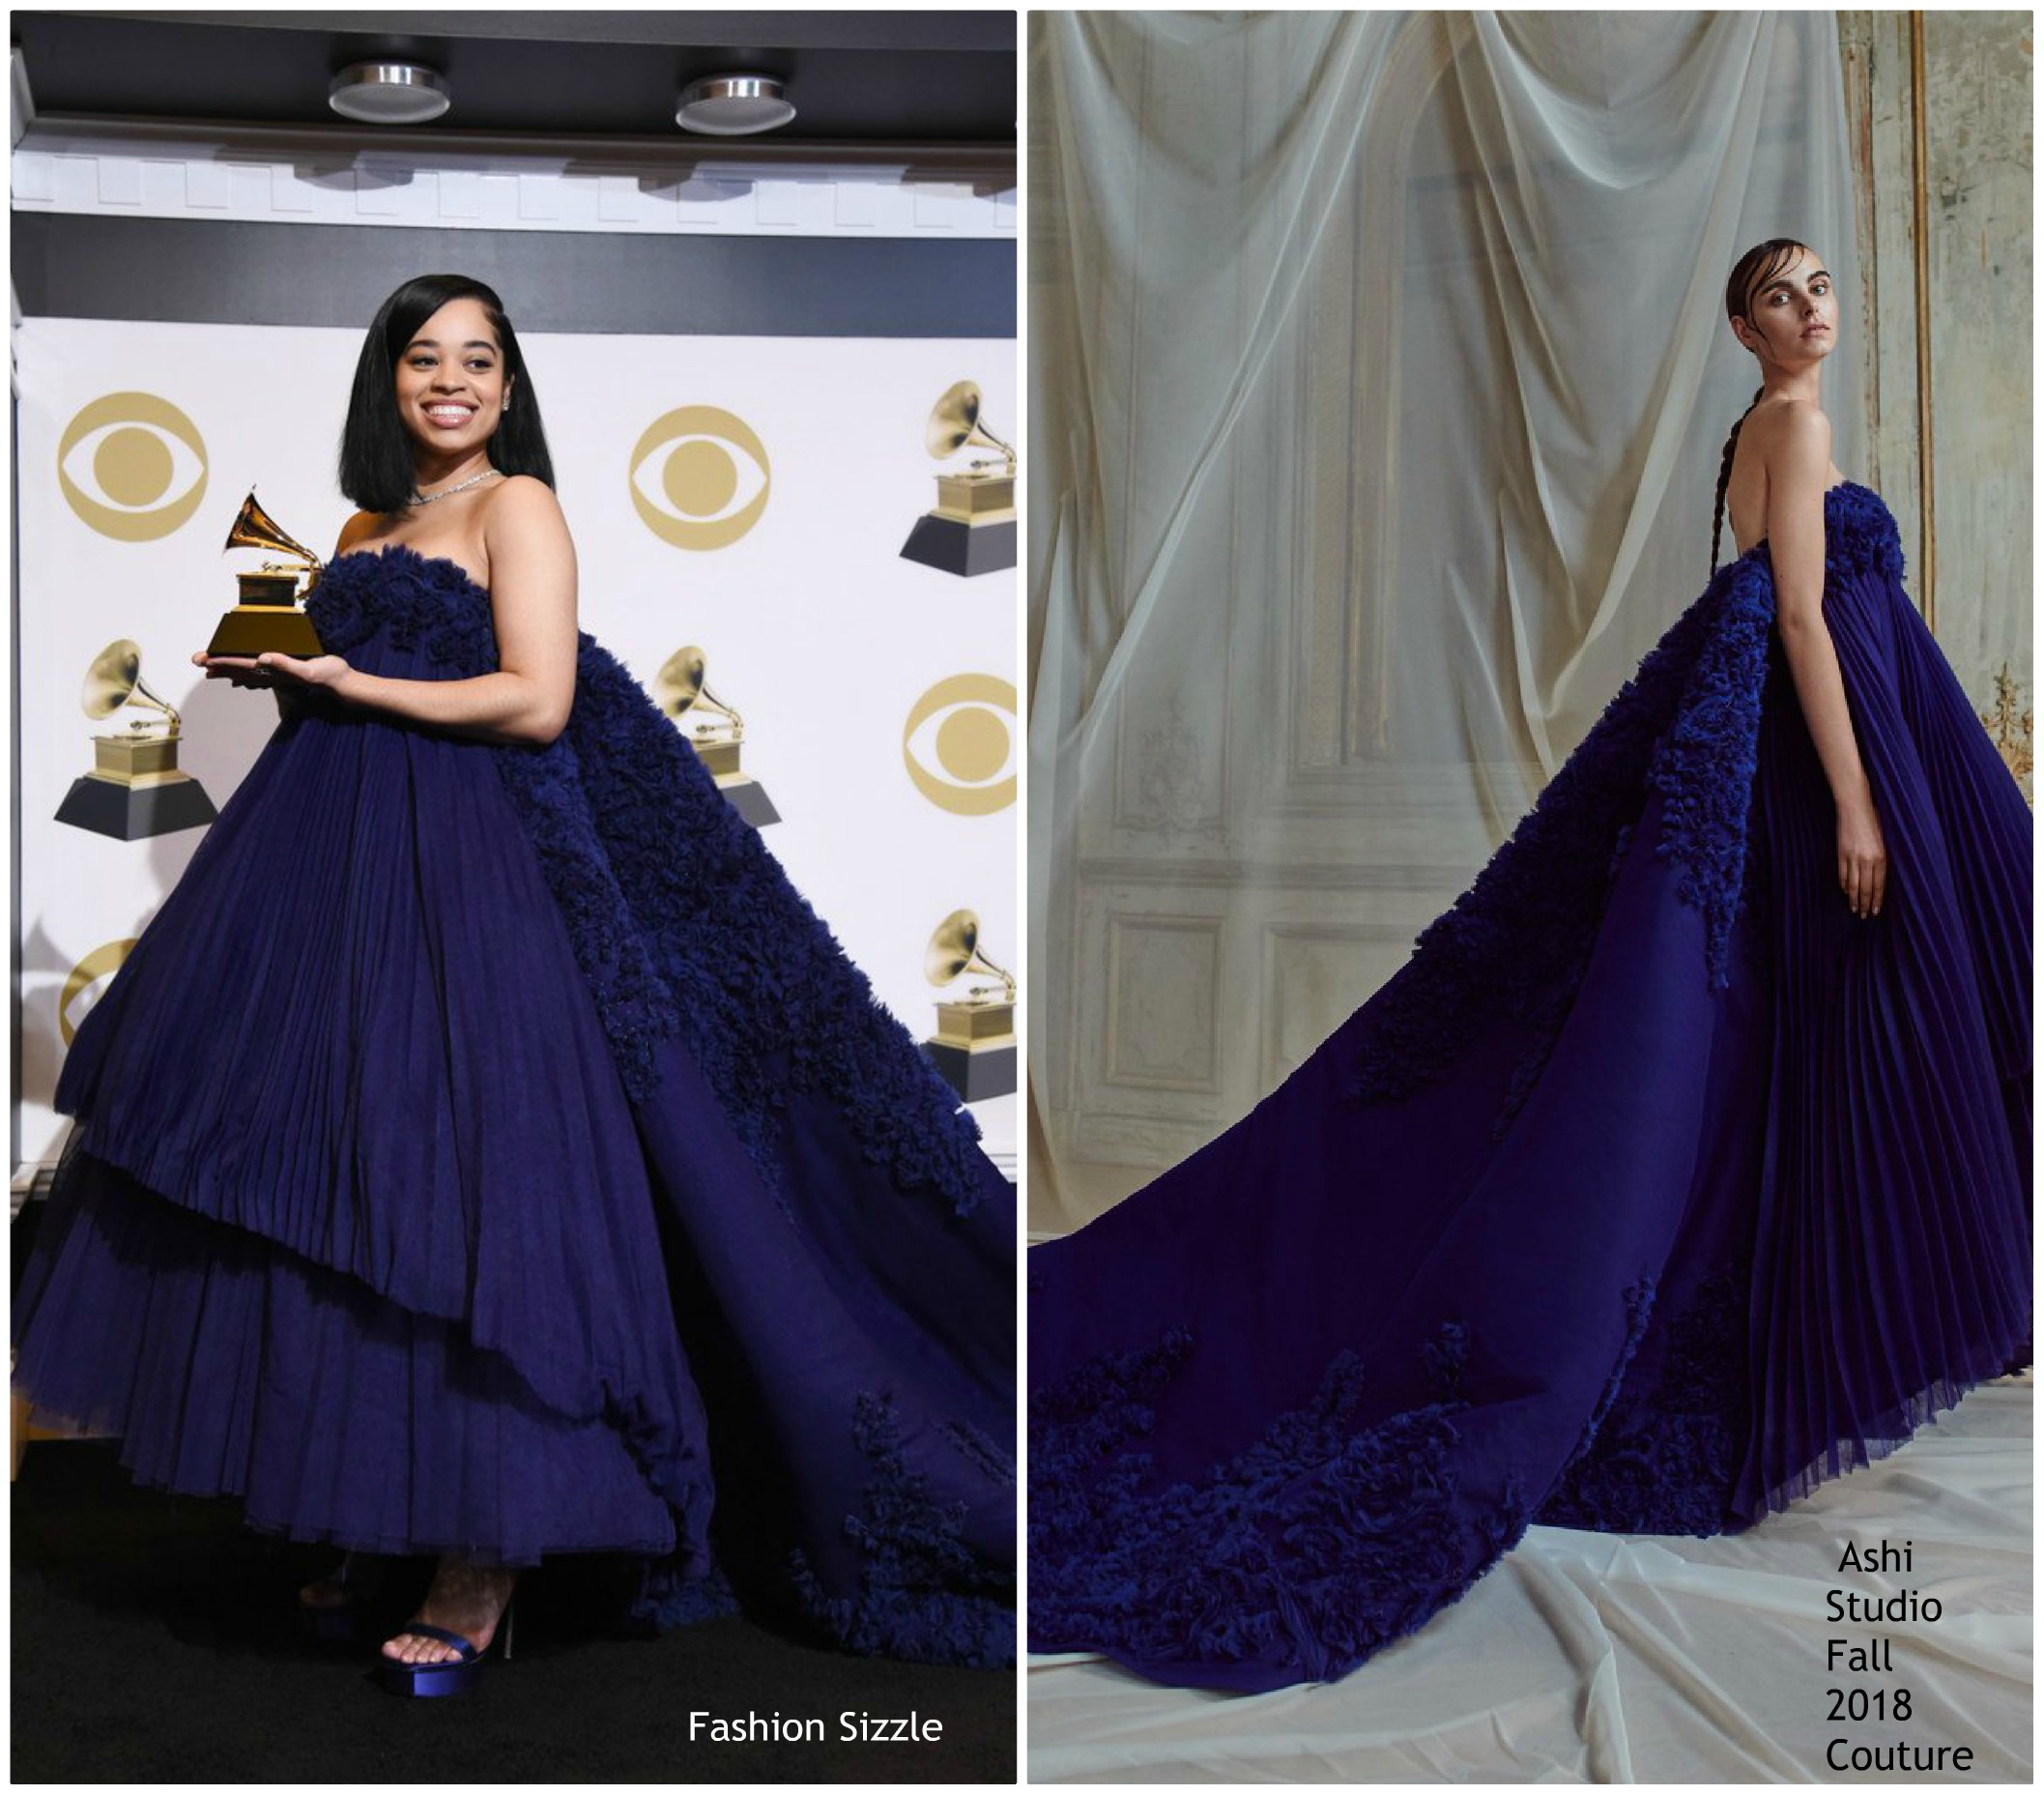 ella-mai-in-ashi-studio-couture-2019-grammy-awards